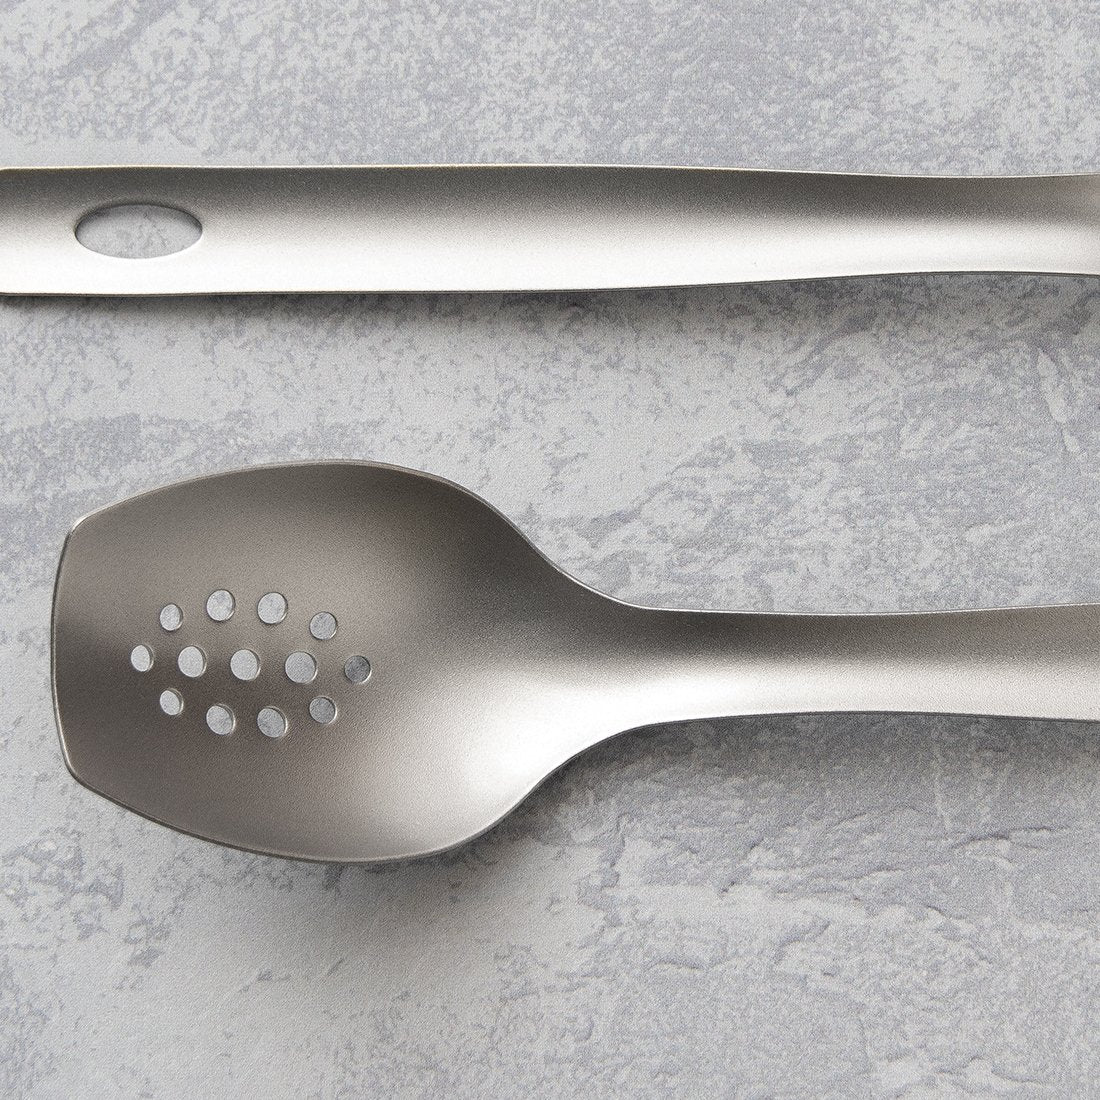 Cook's Spoon w/ Holes